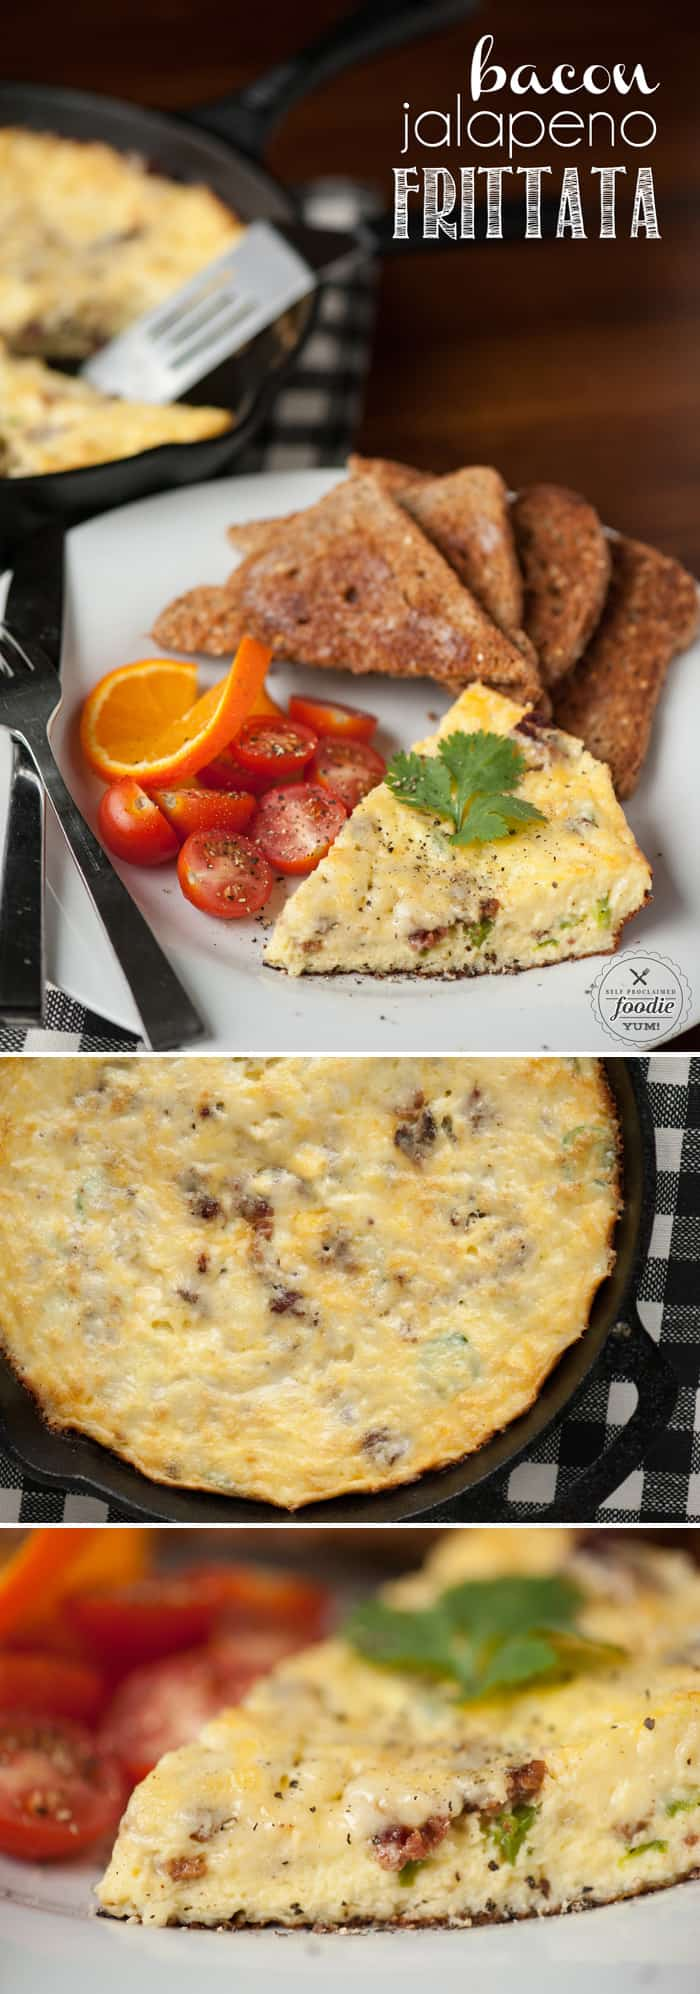 This Bacon Jalapeno Frittata has a secret ingredient that makes it so light, fluffy, and flavorful. Its easy to make and is perfect for breakfast or brunch.